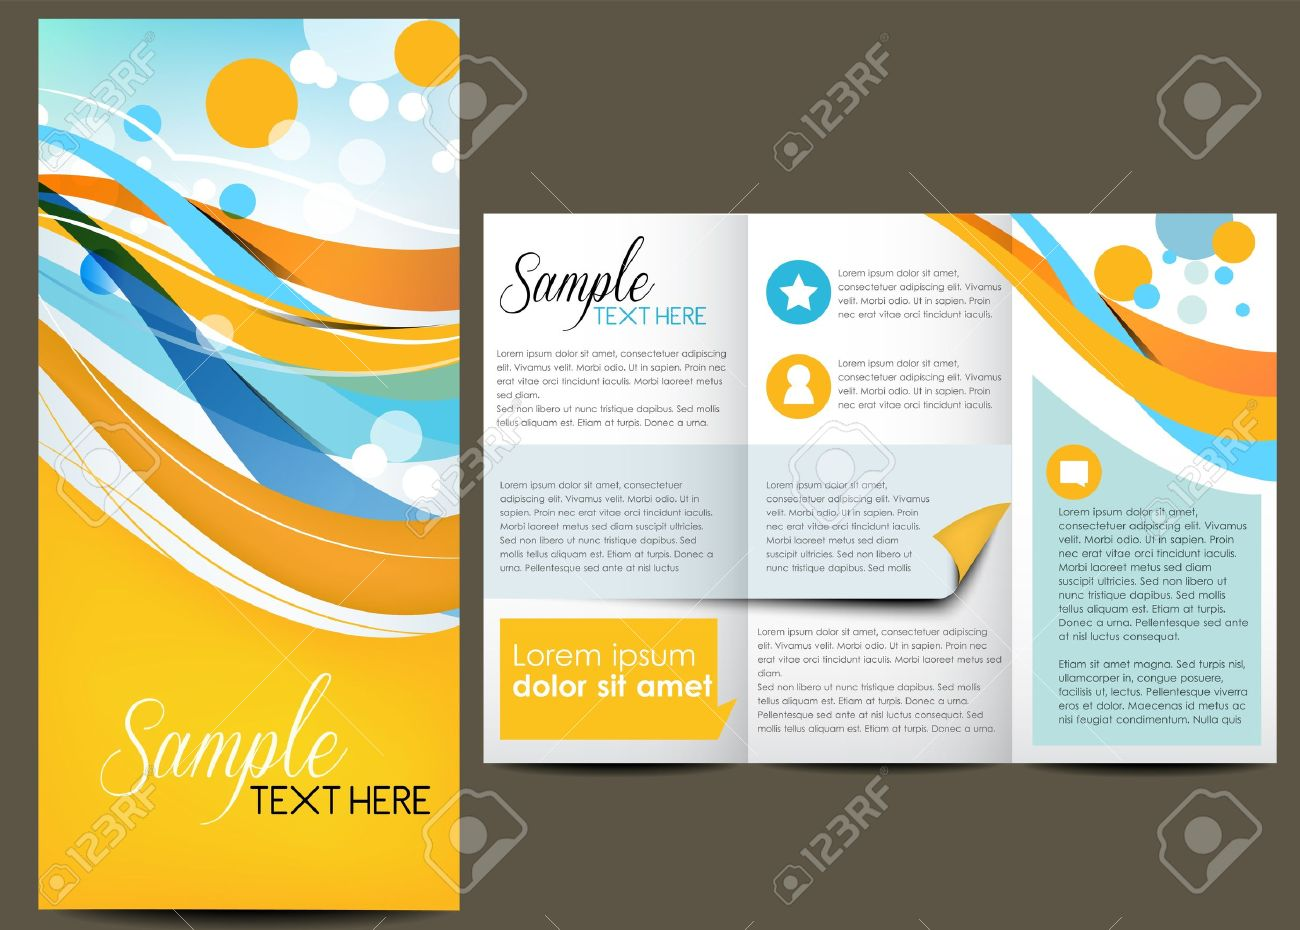 Brochure Layout Design Royalty Free Cliparts Vectors And Stock - Design brochure template